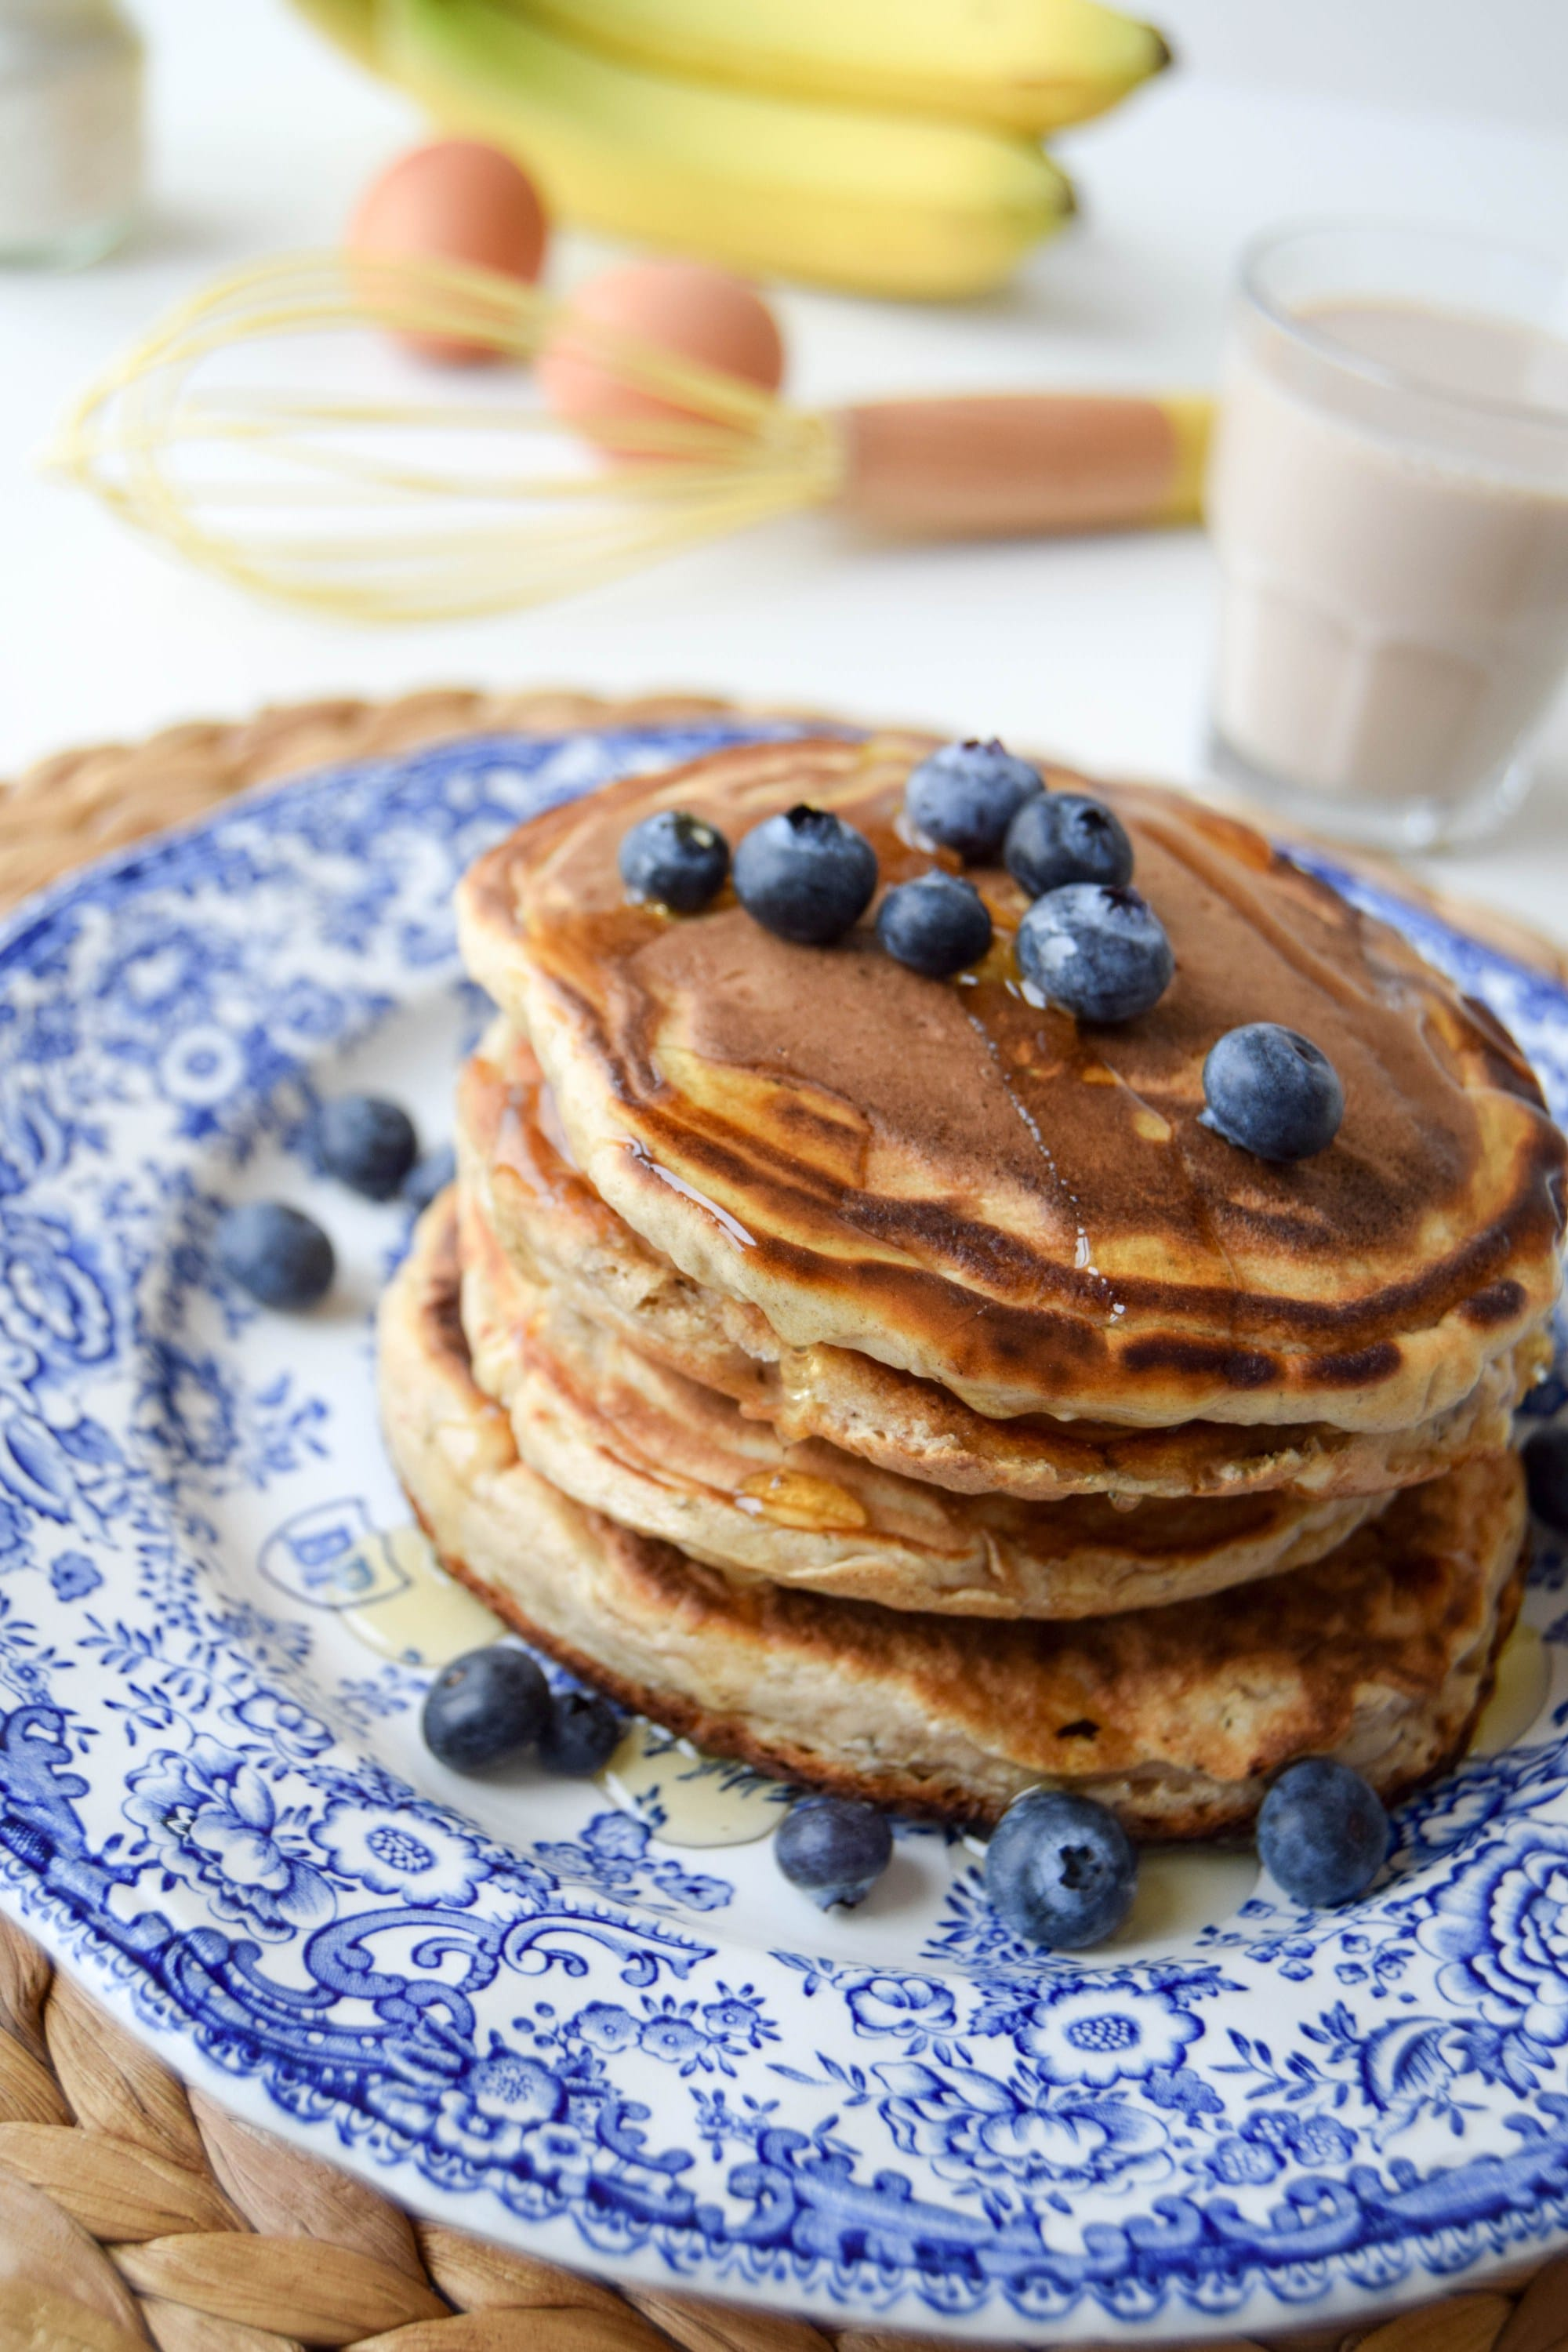 Gluten Free Banana Bread Pancakes by celery and cupcakes